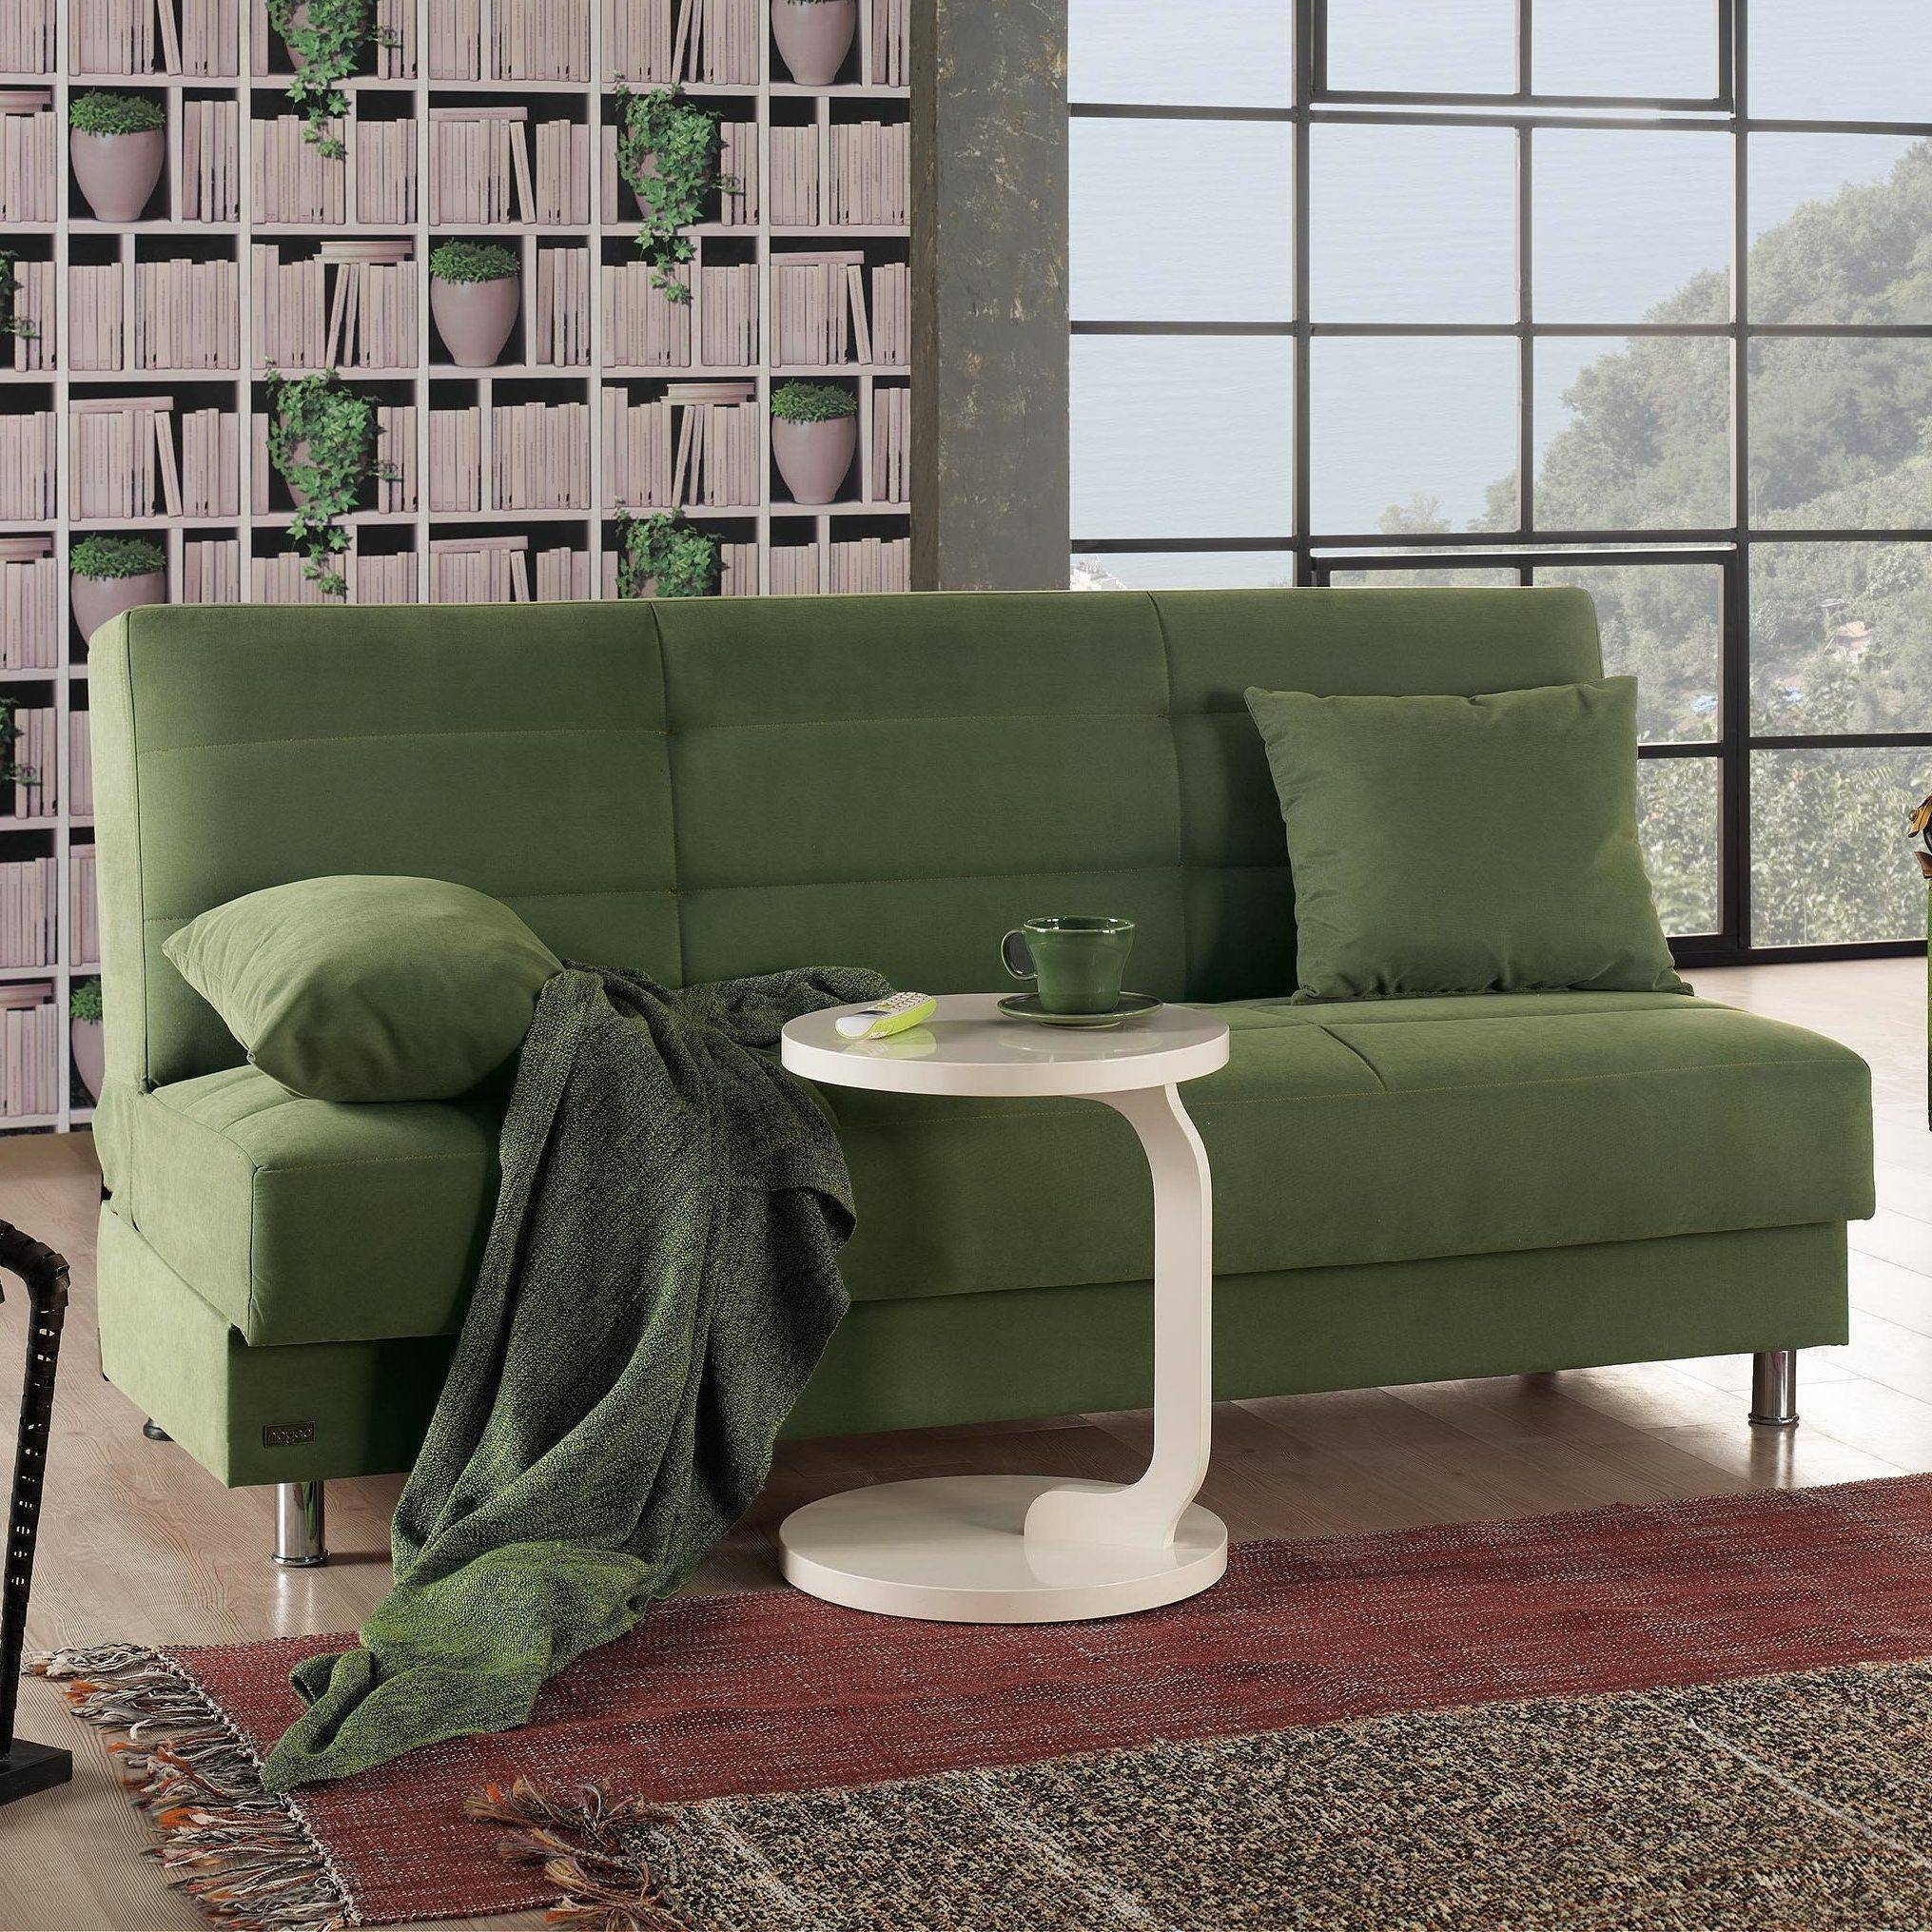 20 Collection Of Davis Sleeper Sofas | Sofa Ideas in Davis Sleeper Sofas (Image 1 of 15)